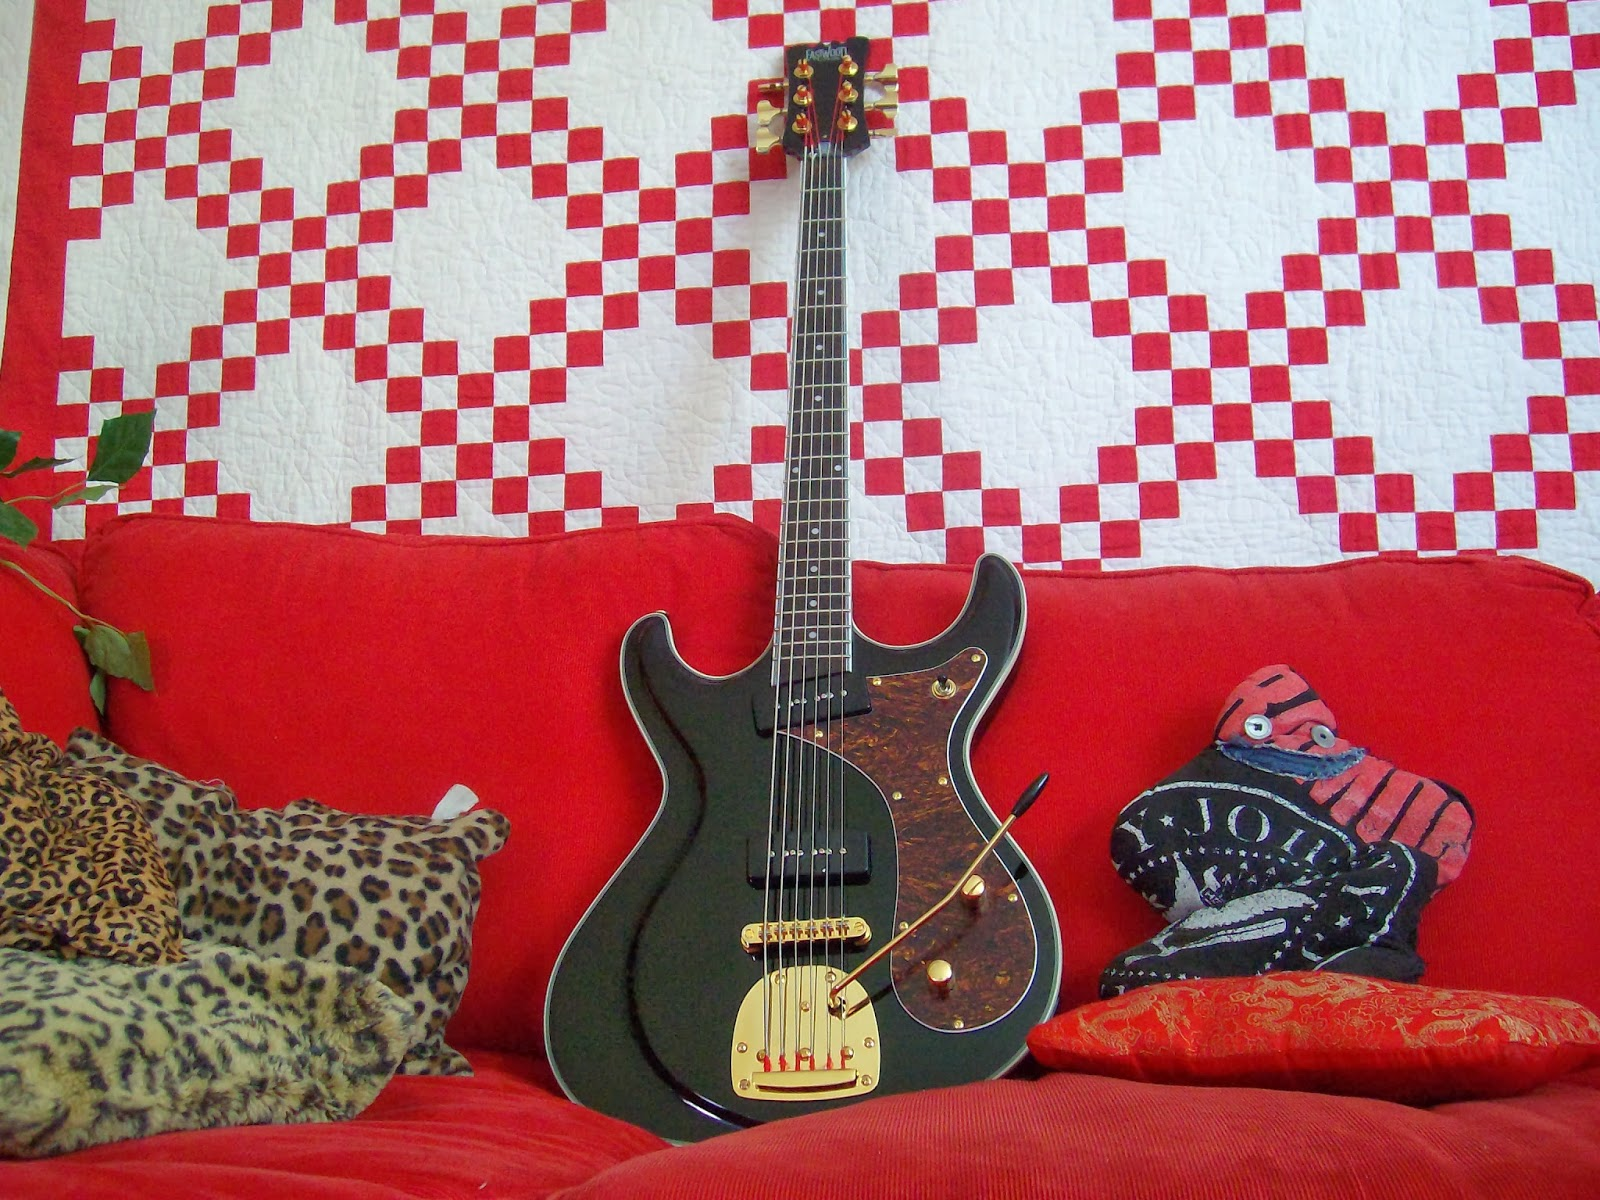 Armoured Vehicles Latin America ⁓ These Eastwood P90 Special Guitar